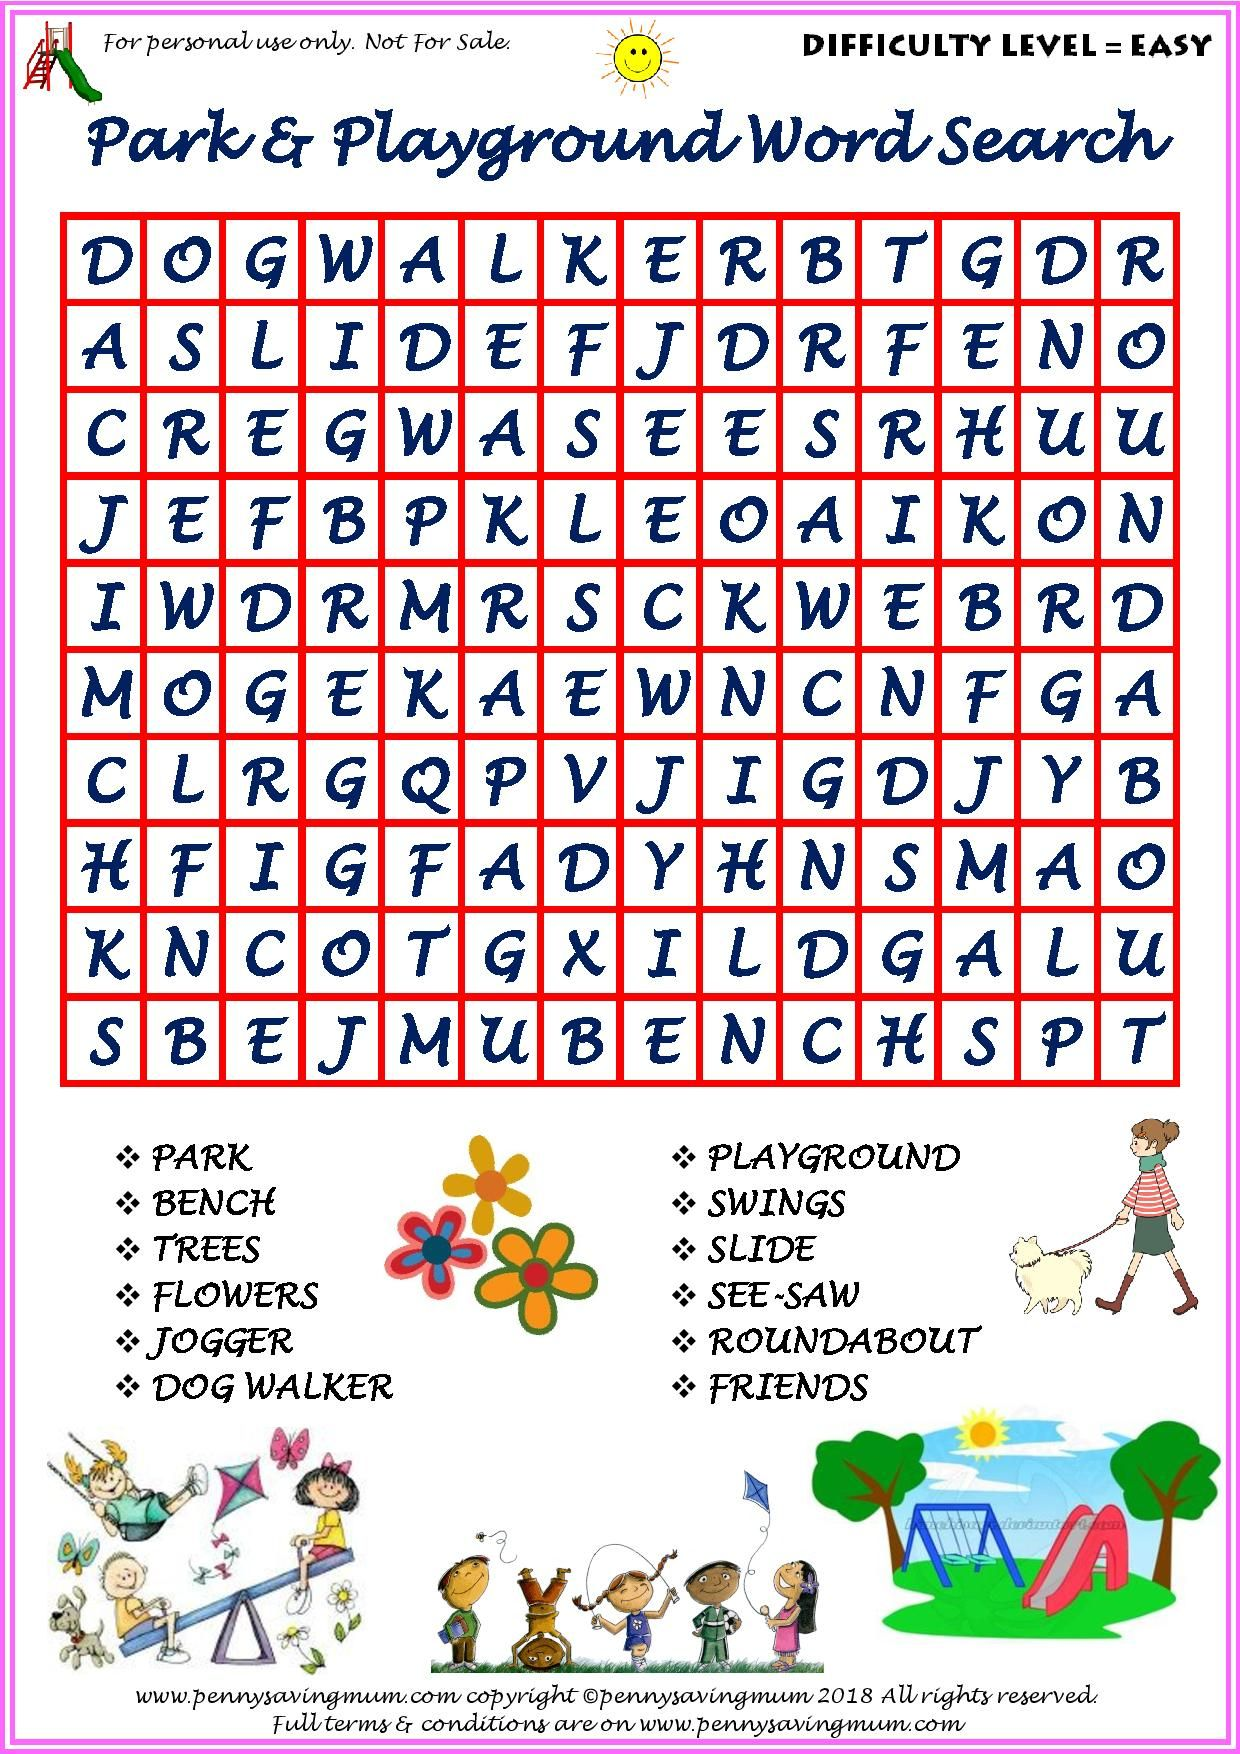 Word Search Park And Playground Easy Version Pdf Penny Saving Mum In 2021 Kids Word Search Word Find Solar System Worksheets [ 1754 x 1240 Pixel ]